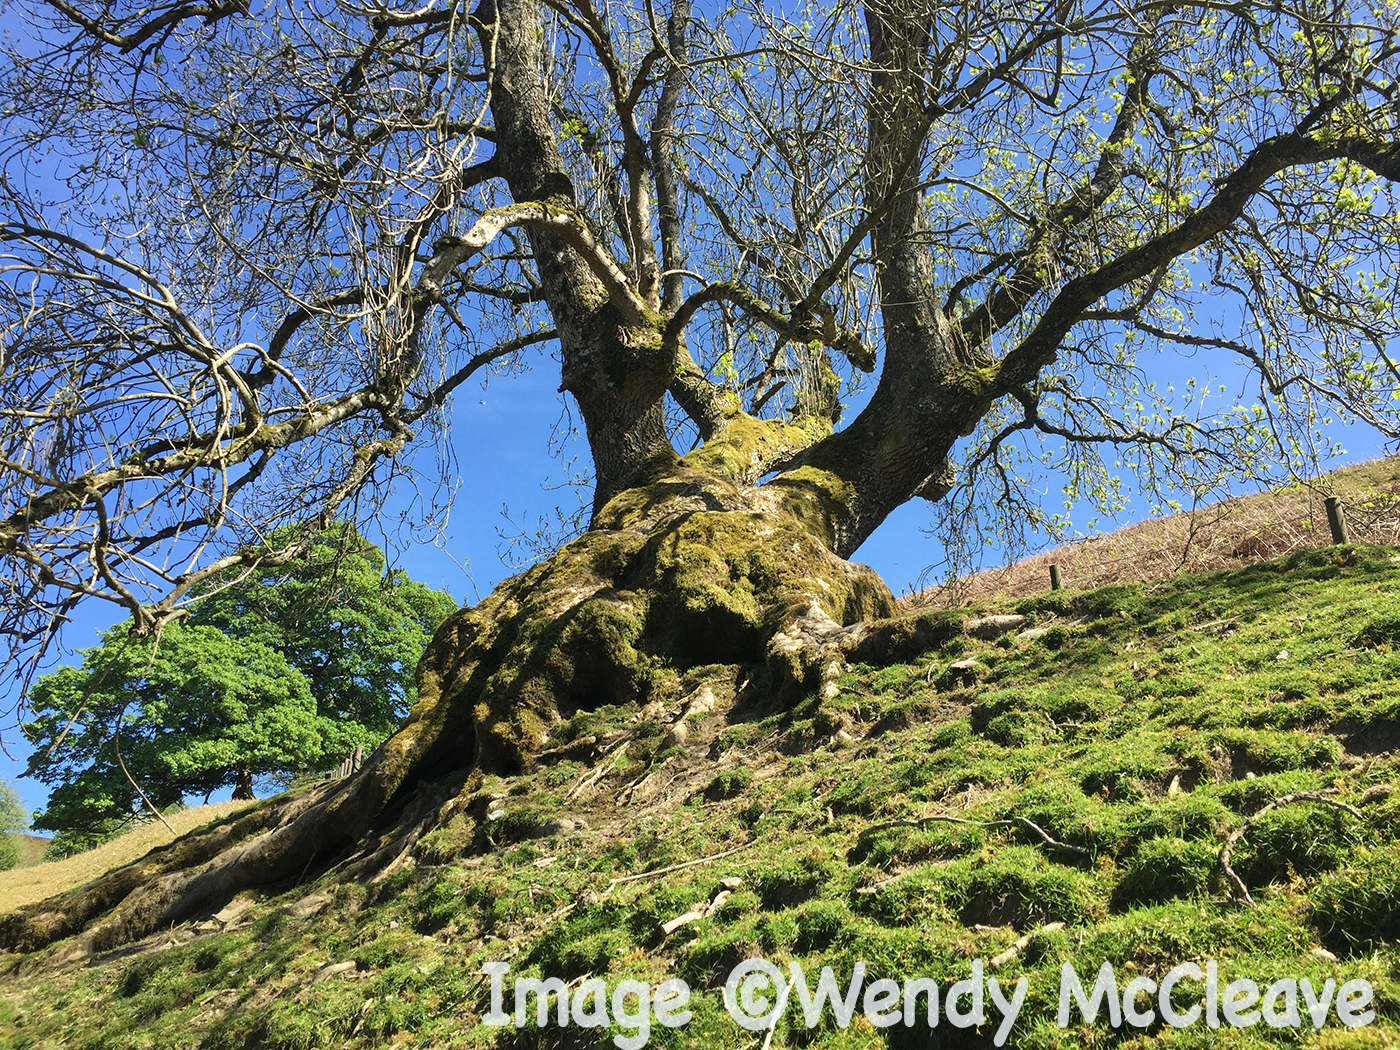 A leaning tree on a hill against a blue sky